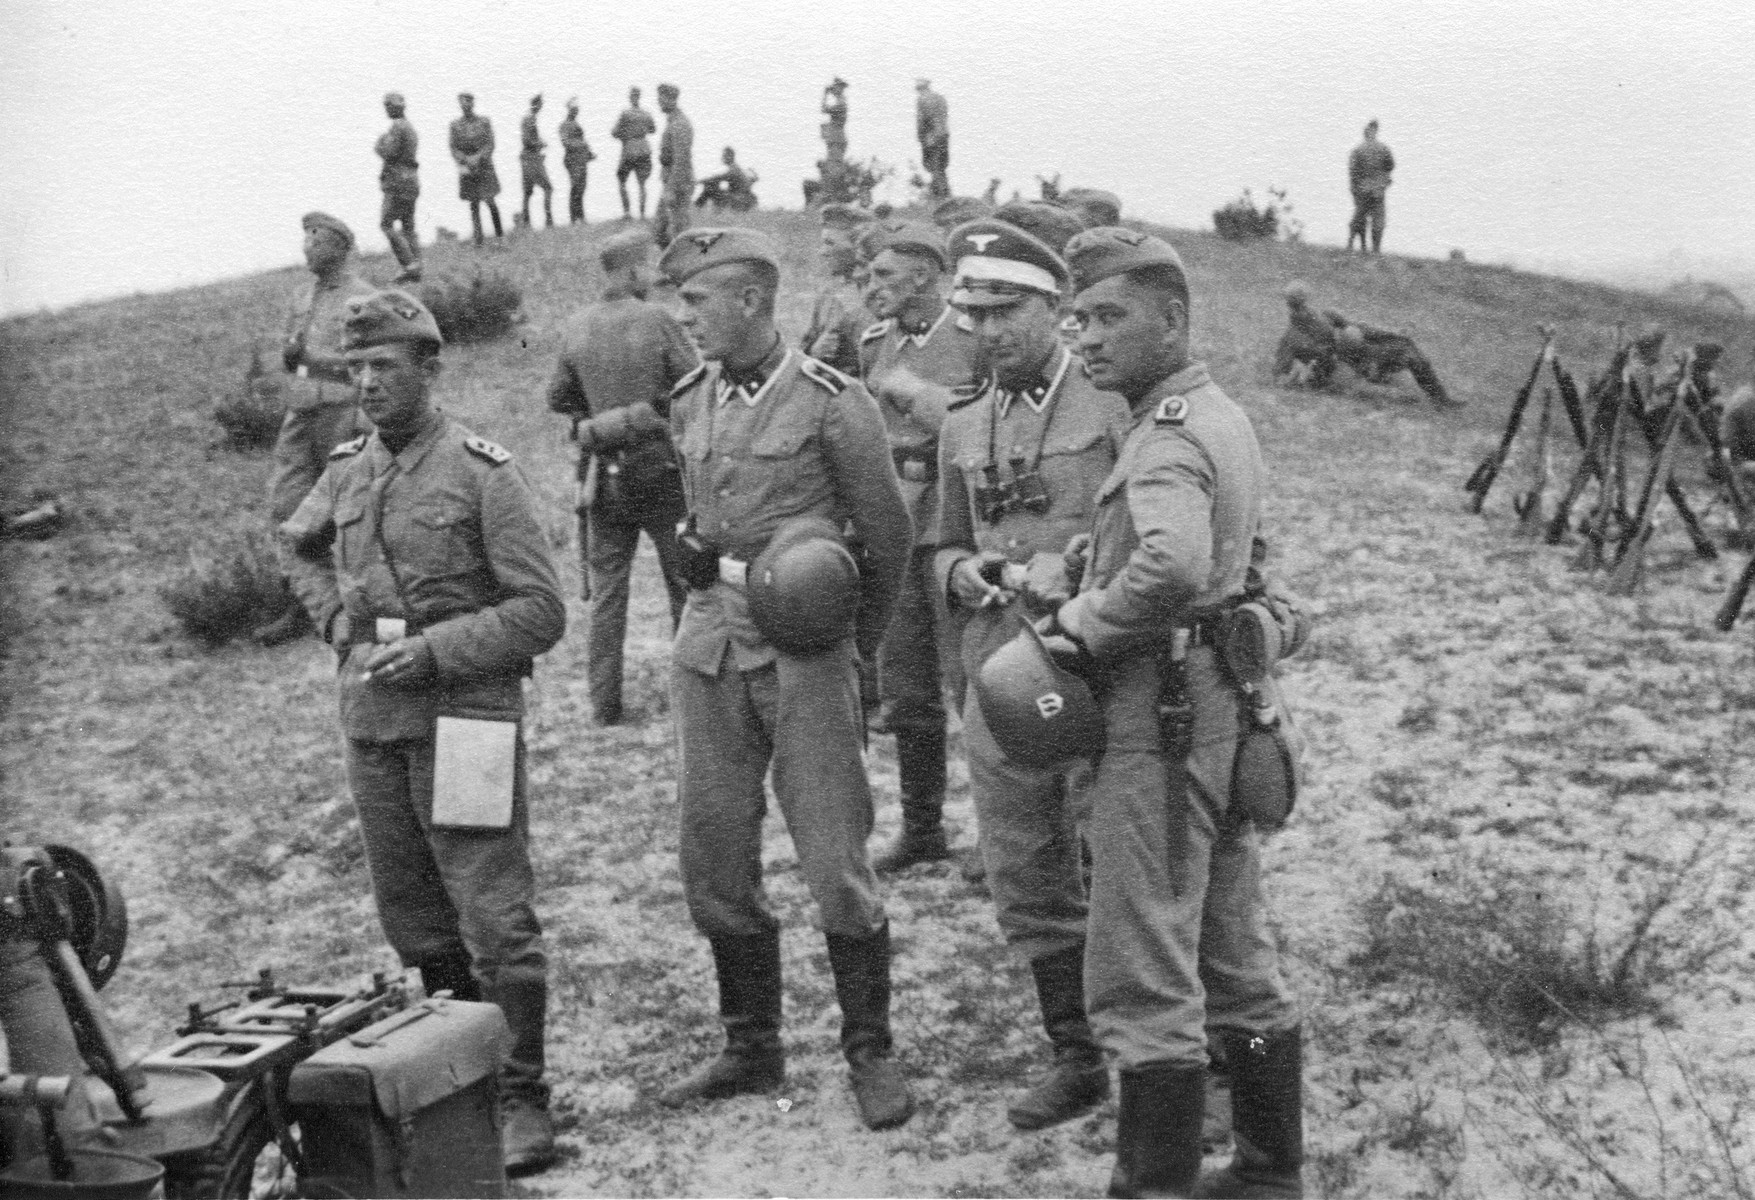 Members of the Waffen-SS during training in occupied Poland.